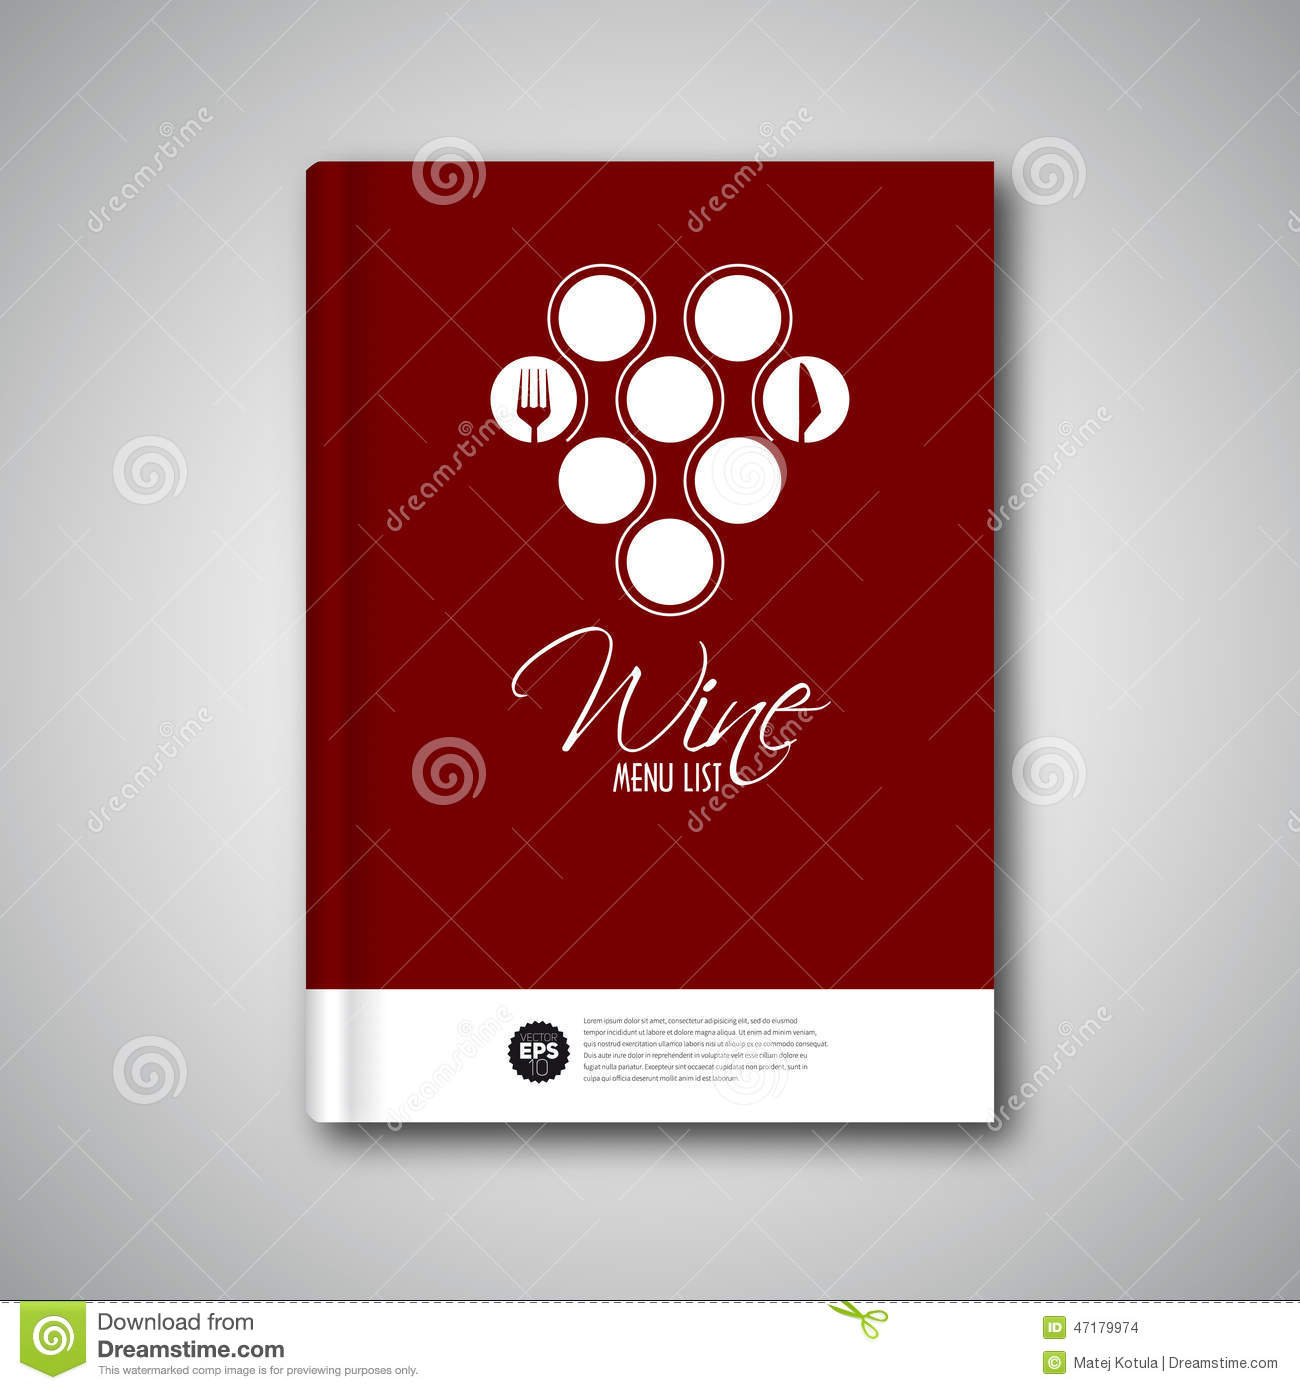 Wine menu design template cover brochure card stock for Wine brochure template